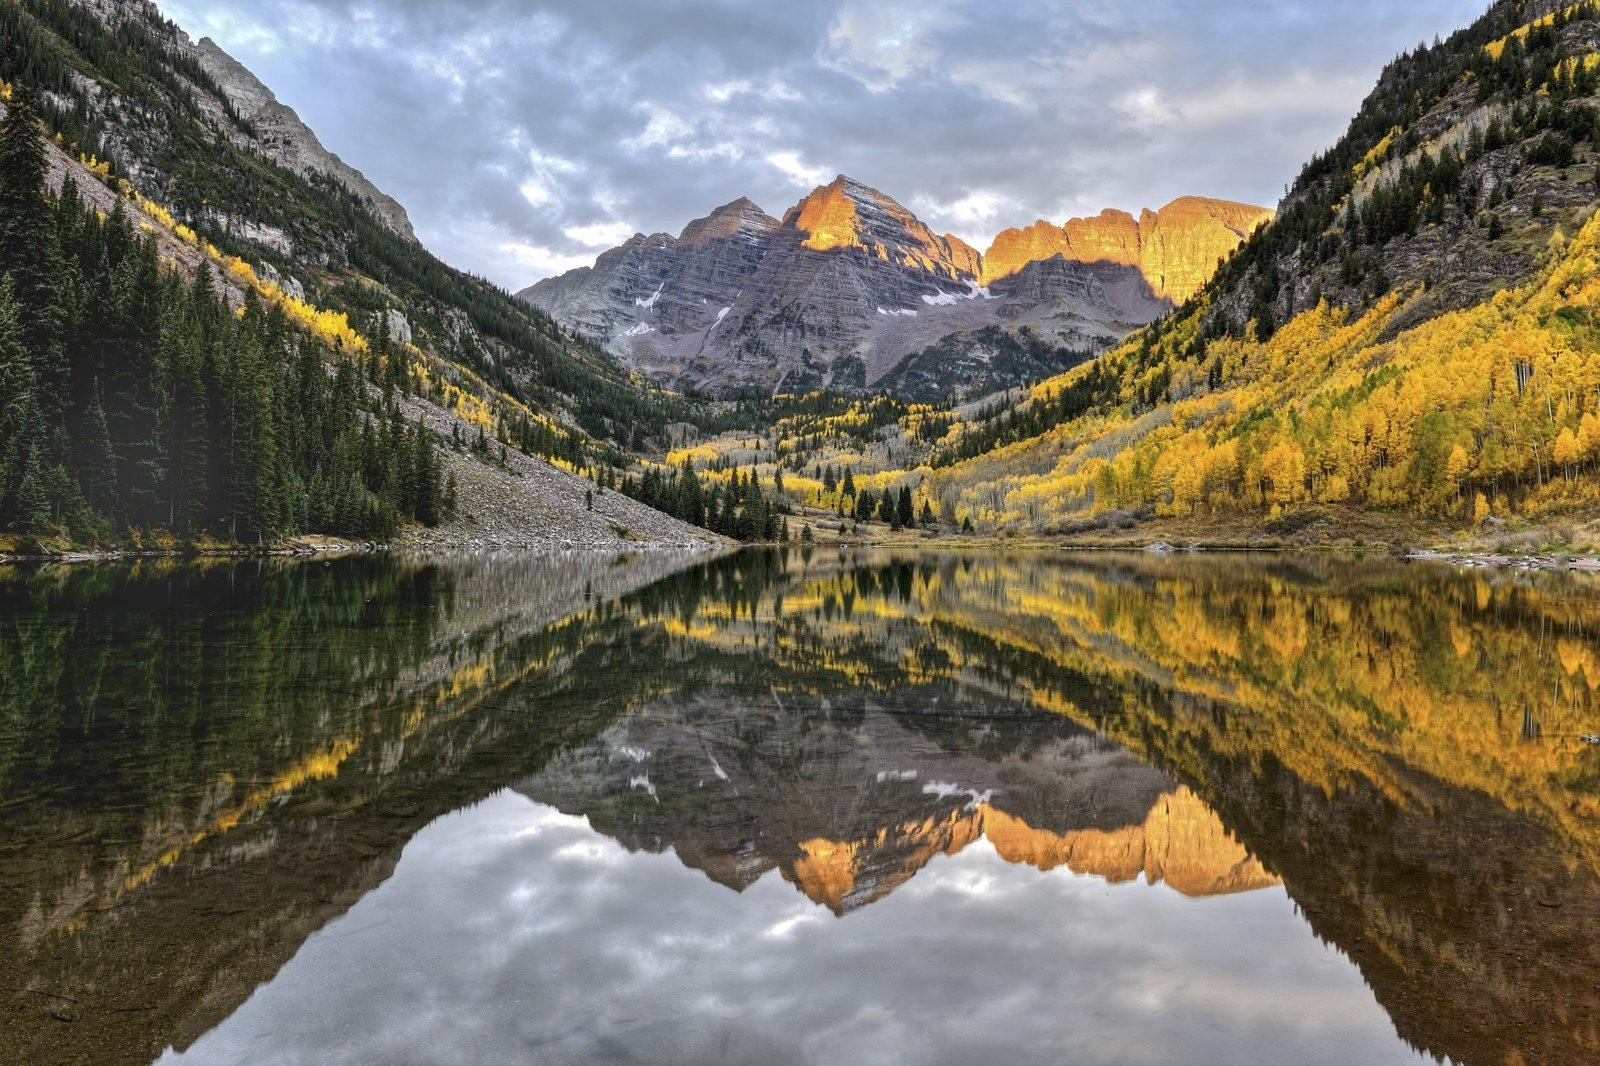 Today's Photo Of The Day is Marron Lake by Eric Grimm. Location: Maroon Lake, Aspen, Colorado.